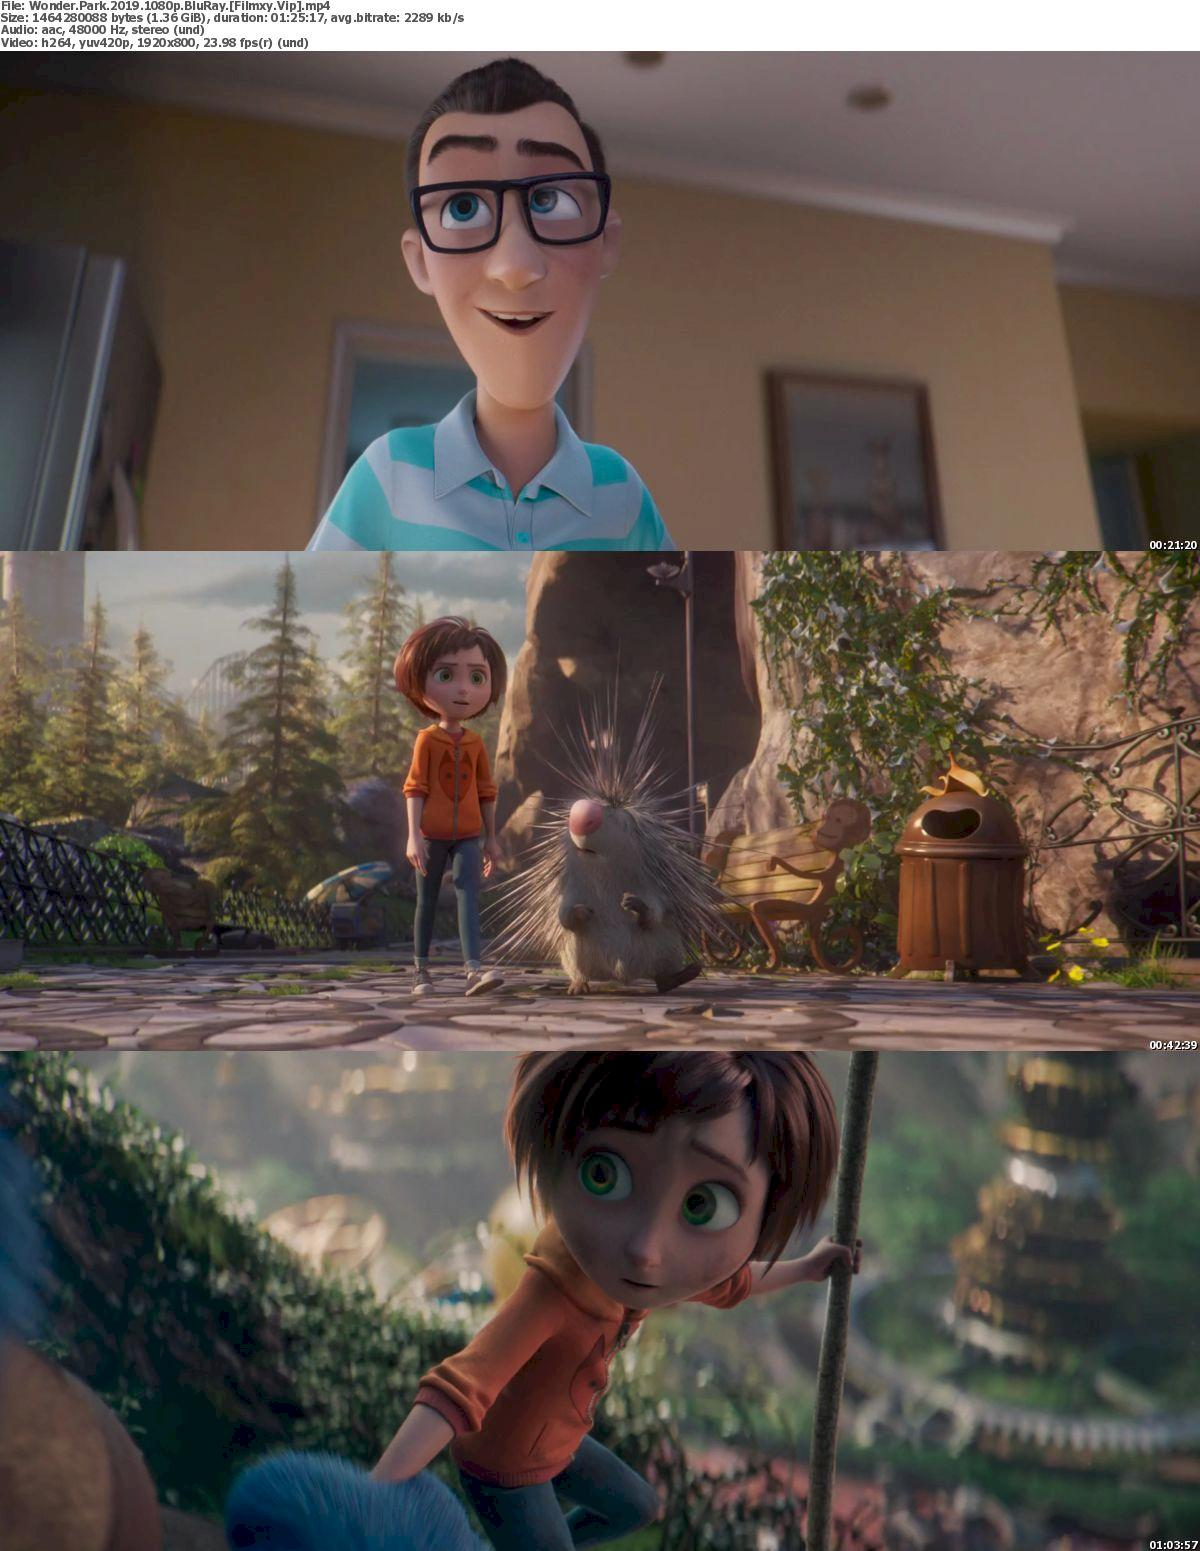 Wonder Park (2019) [720p & 1080p] Bluray Free Movie Watch Online & Download 1080p Screenshot